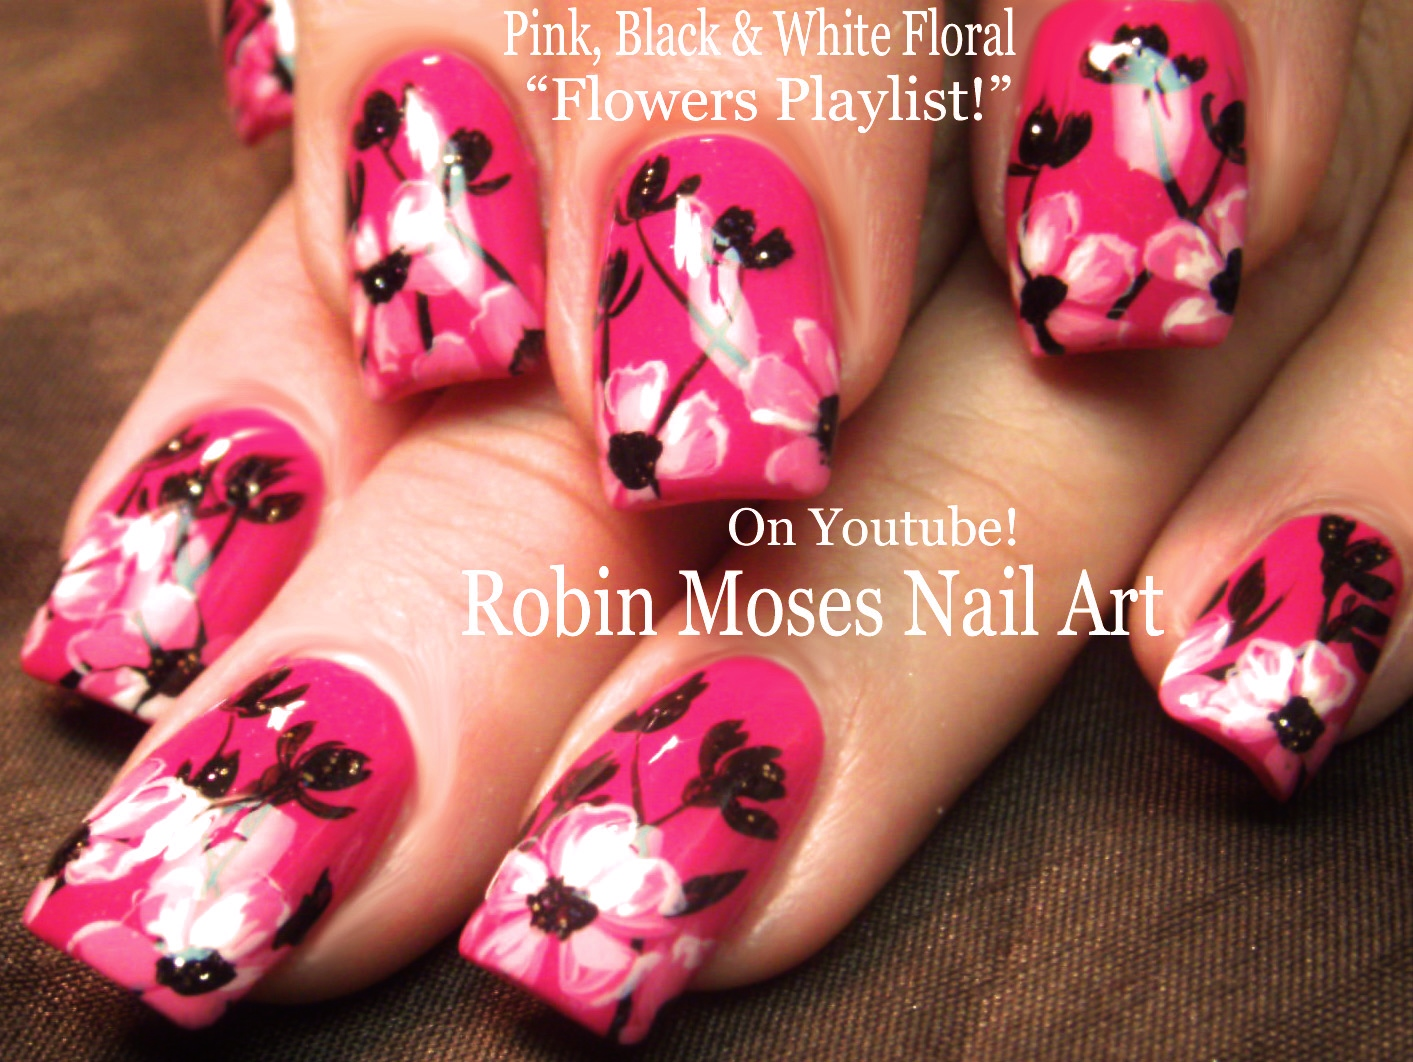 Robin moses nail art rainbow curls on lavender tips nail art cute nails cute nail playlist cutest diy nail designs nail art for beginners to advanced nail techs prinsesfo Image collections